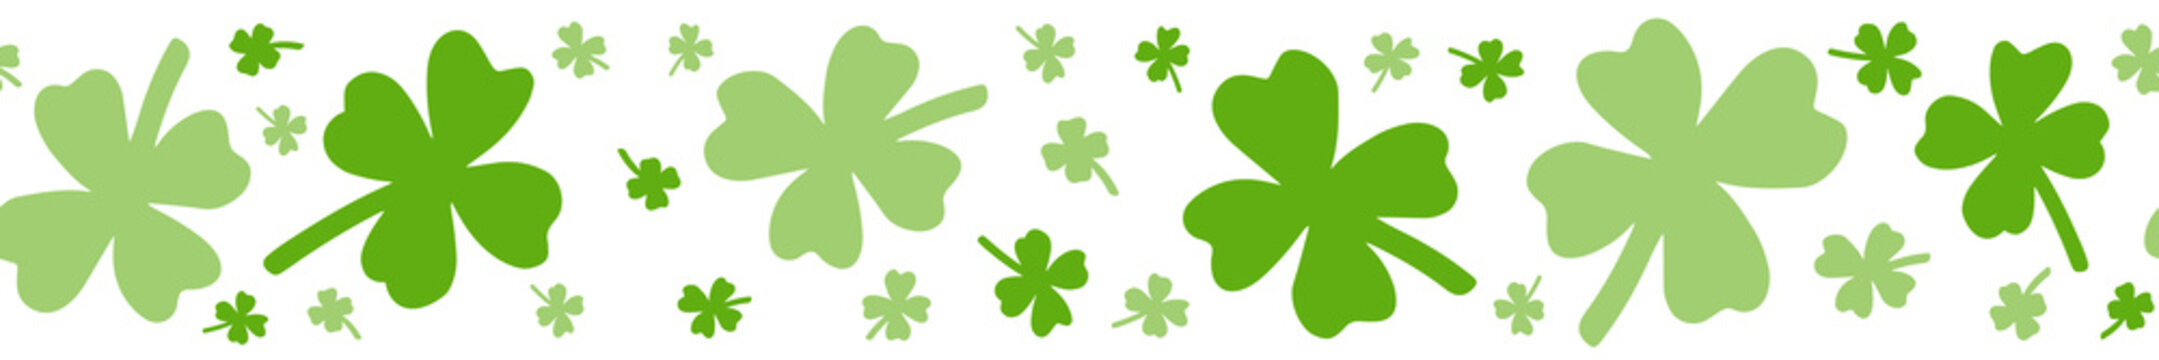 Saint Patrick's day washi tape. Spring decorative border with botanical four-leaf clover vector clipart for March 17th decoration.